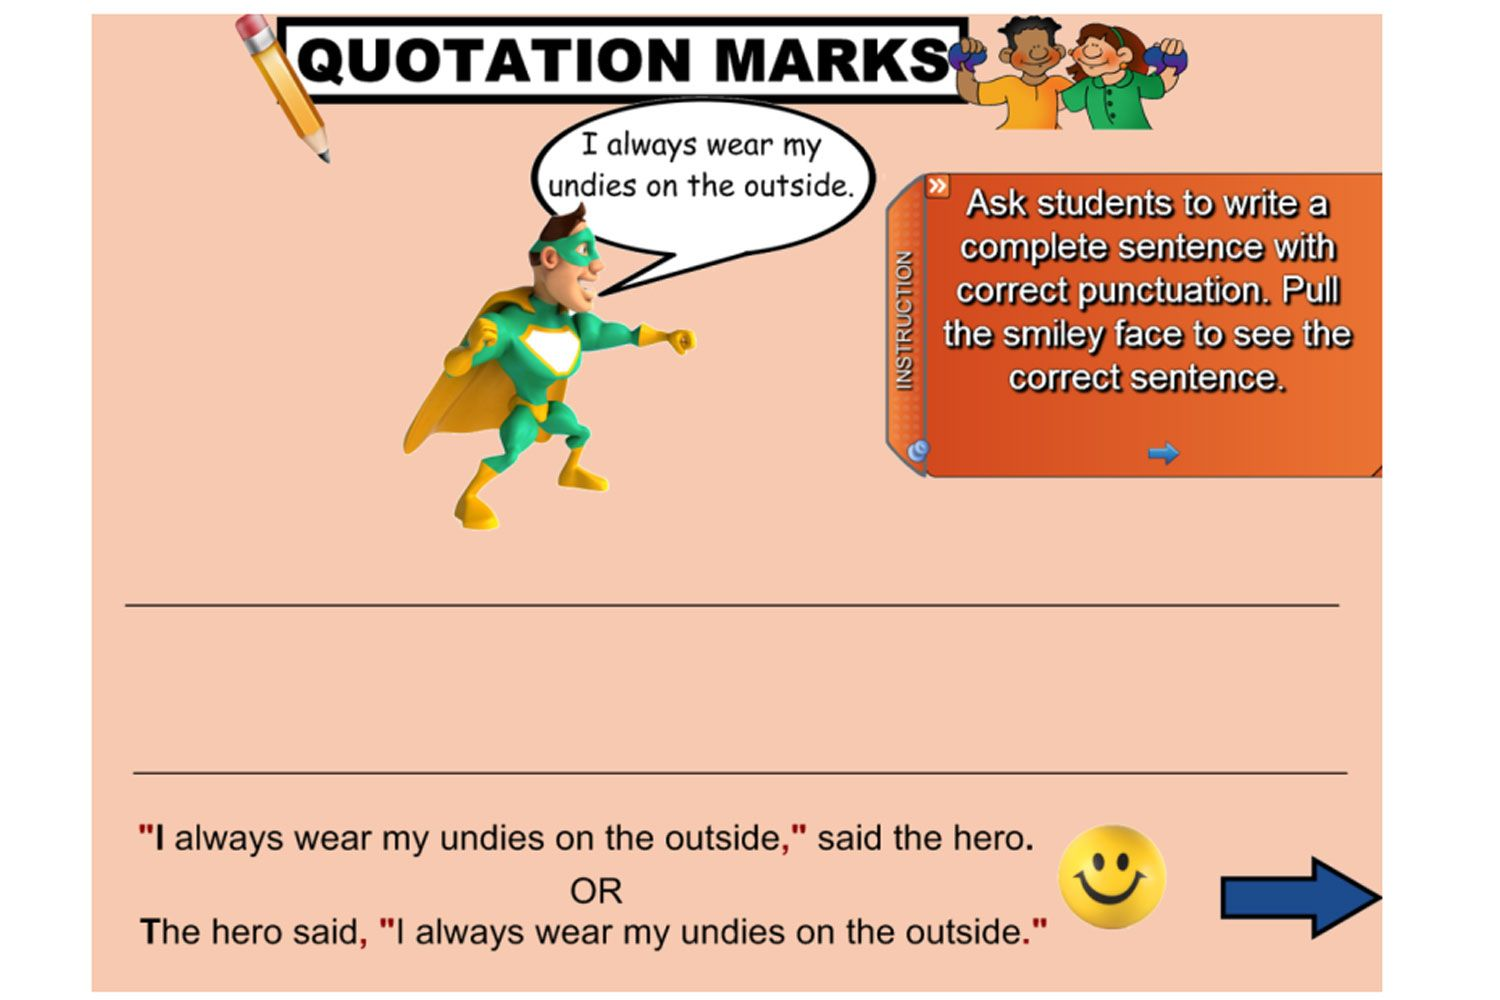 Easy Quotation Marks Worksheet